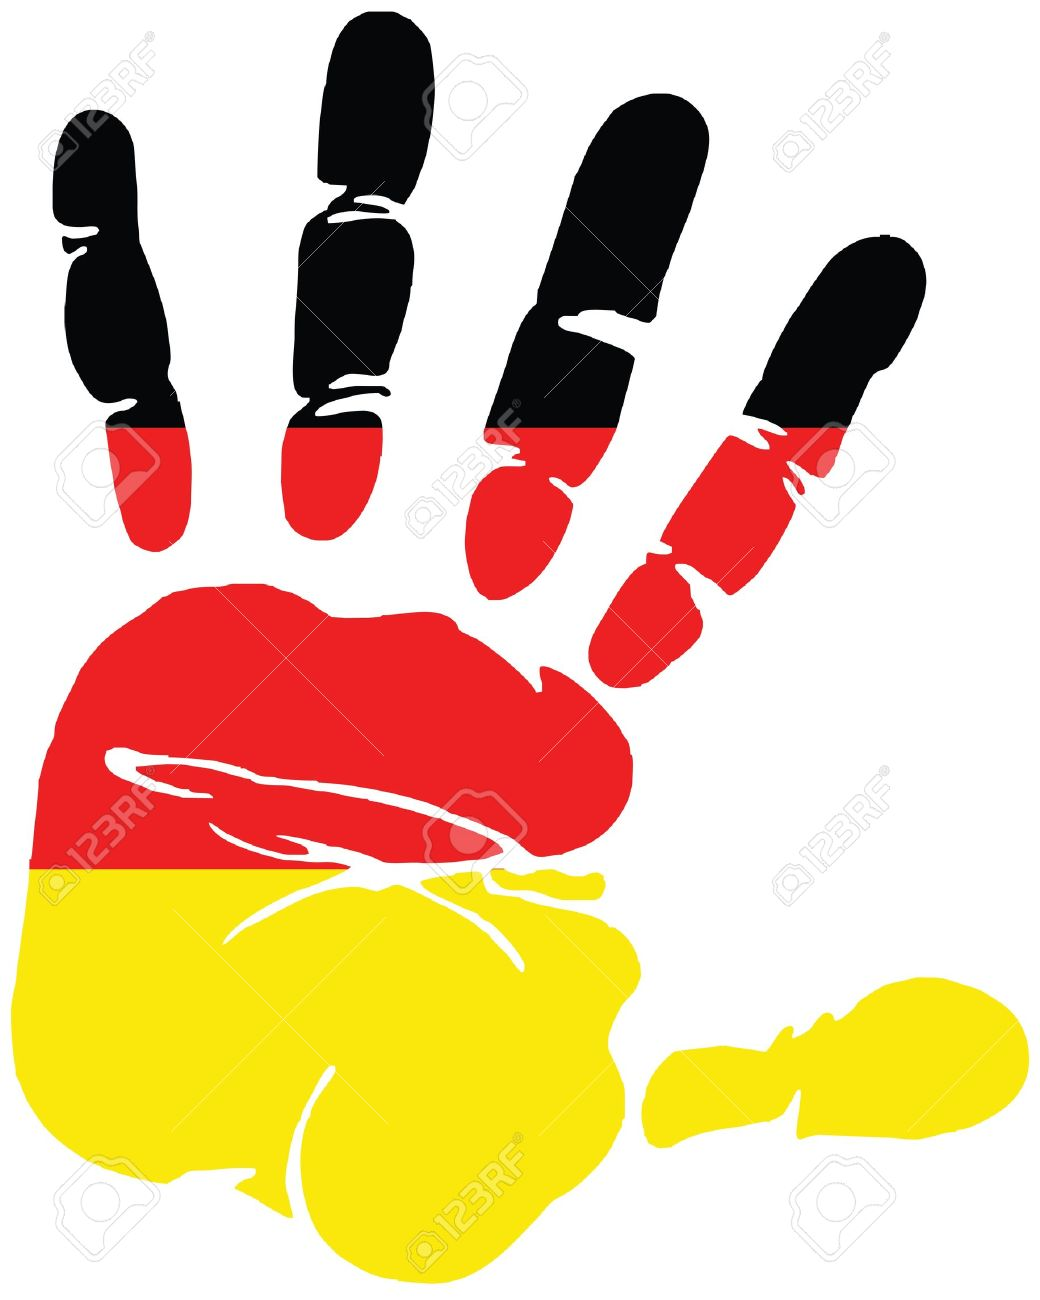 366 Germany free clipart.